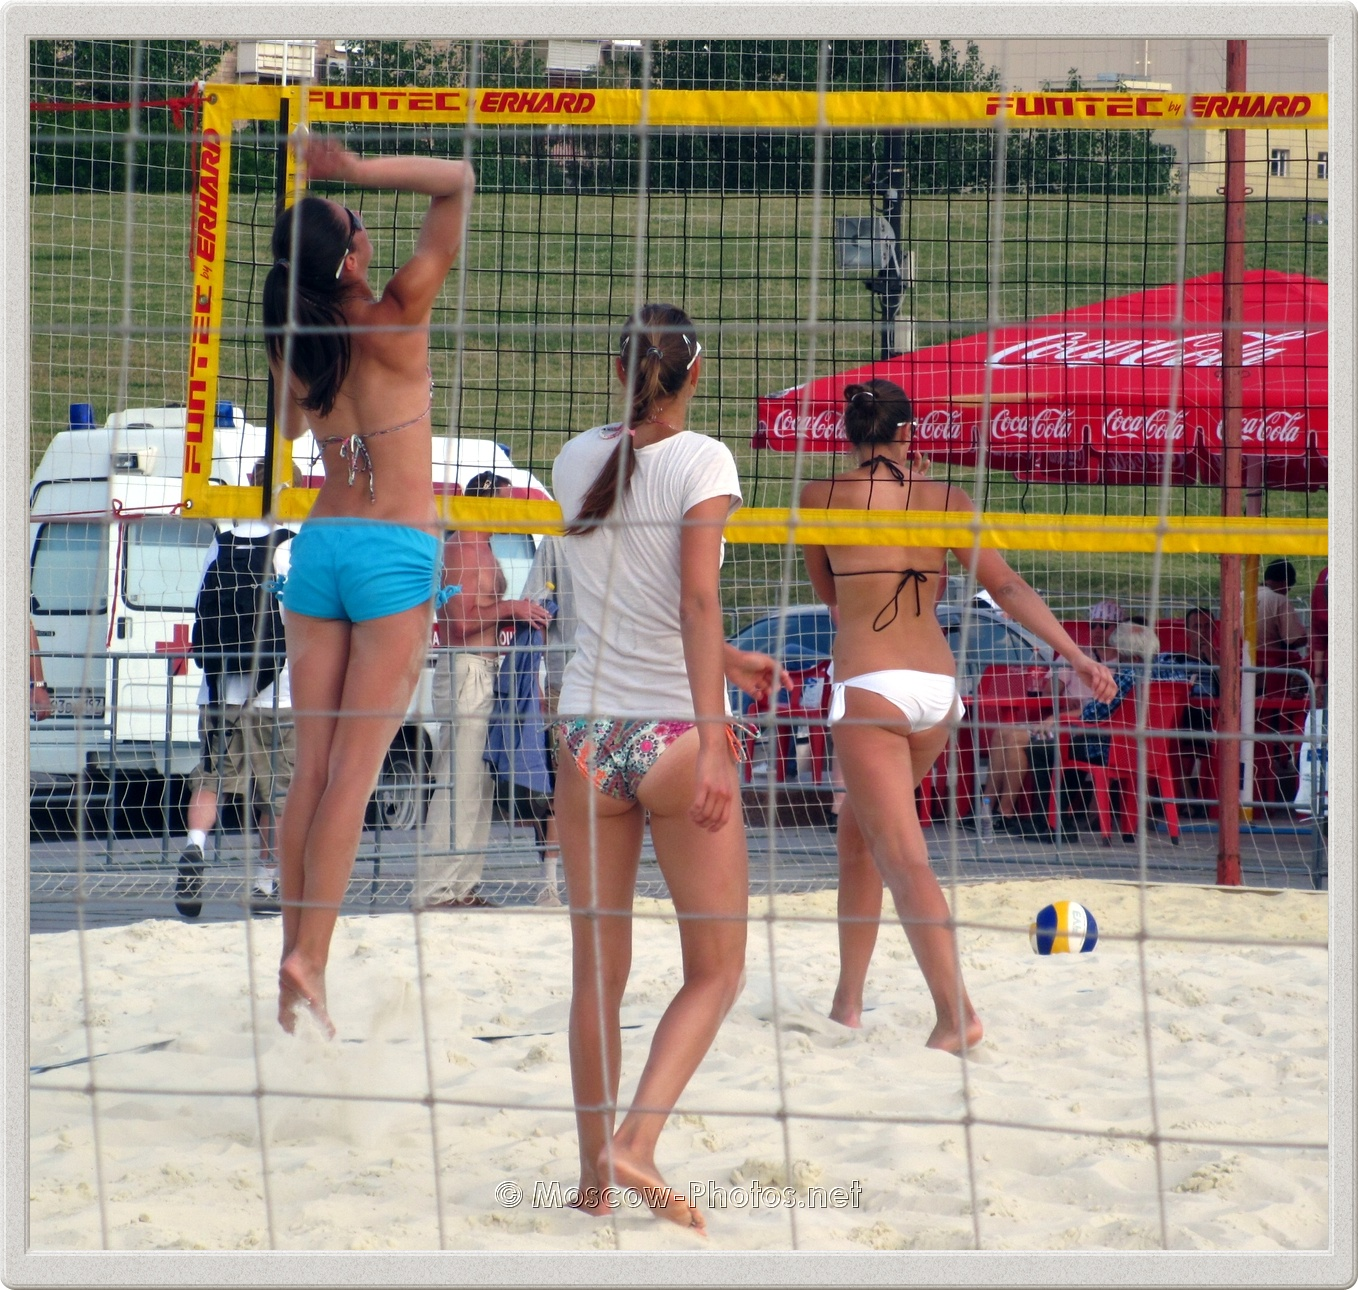 BEACH VOLLEYBALL TRAINING COURT